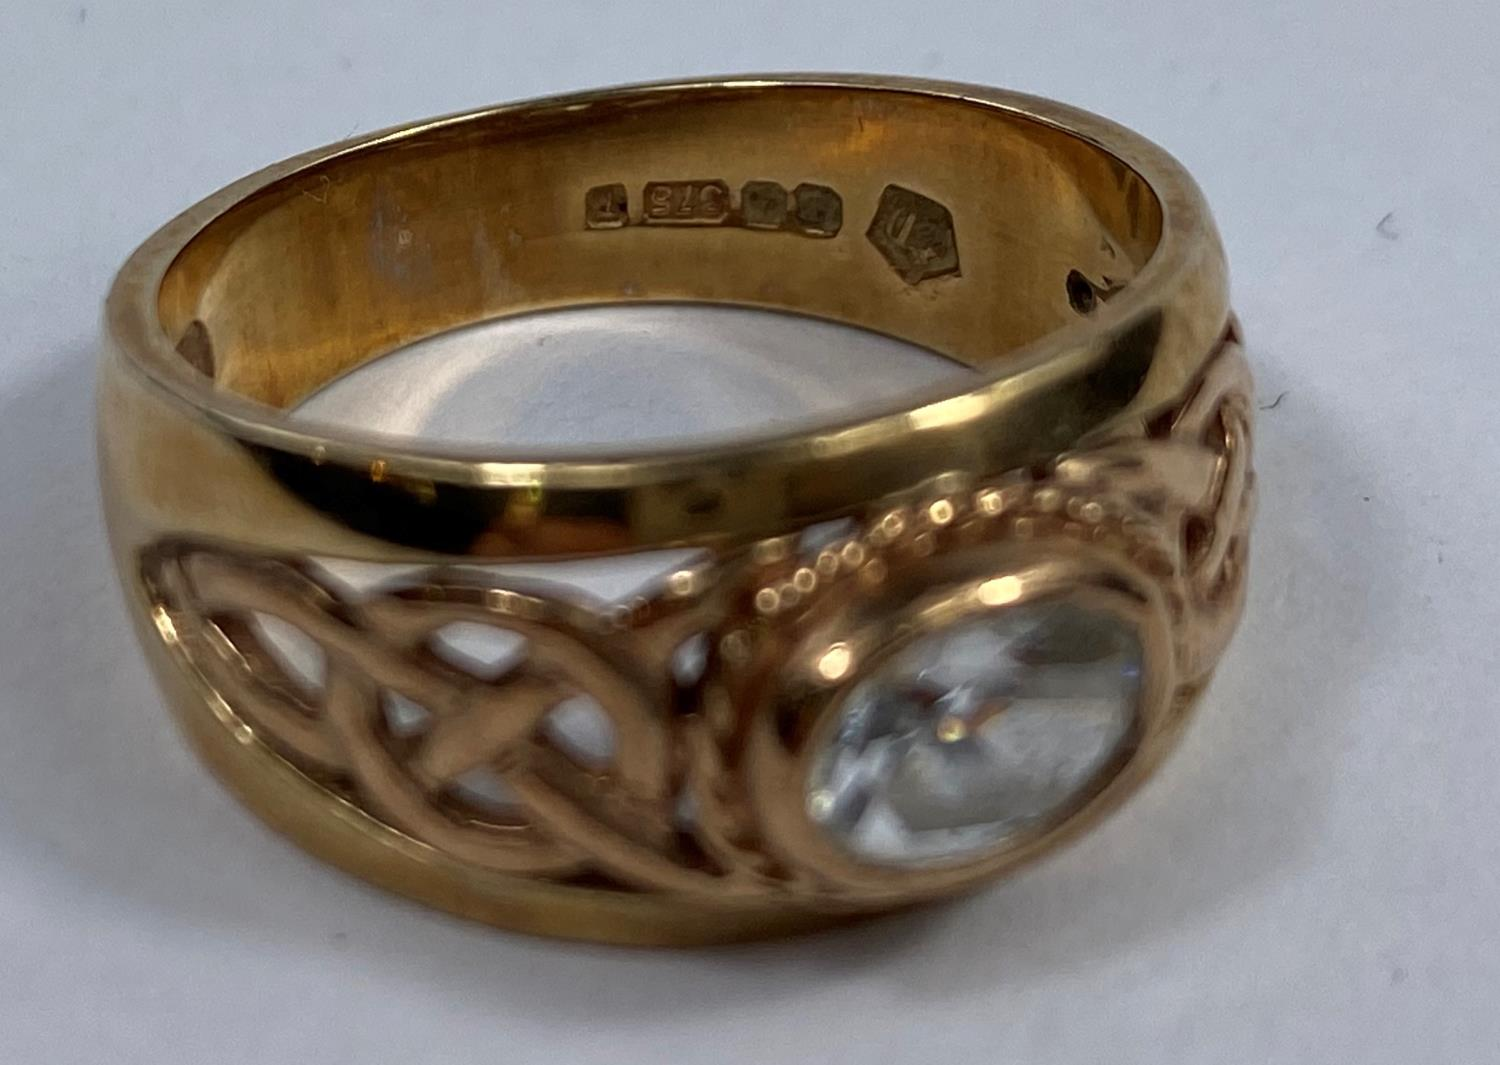 A 9 carat hallmarked gold period style ring set clear oval stone, the split shank with pierced - Image 3 of 5